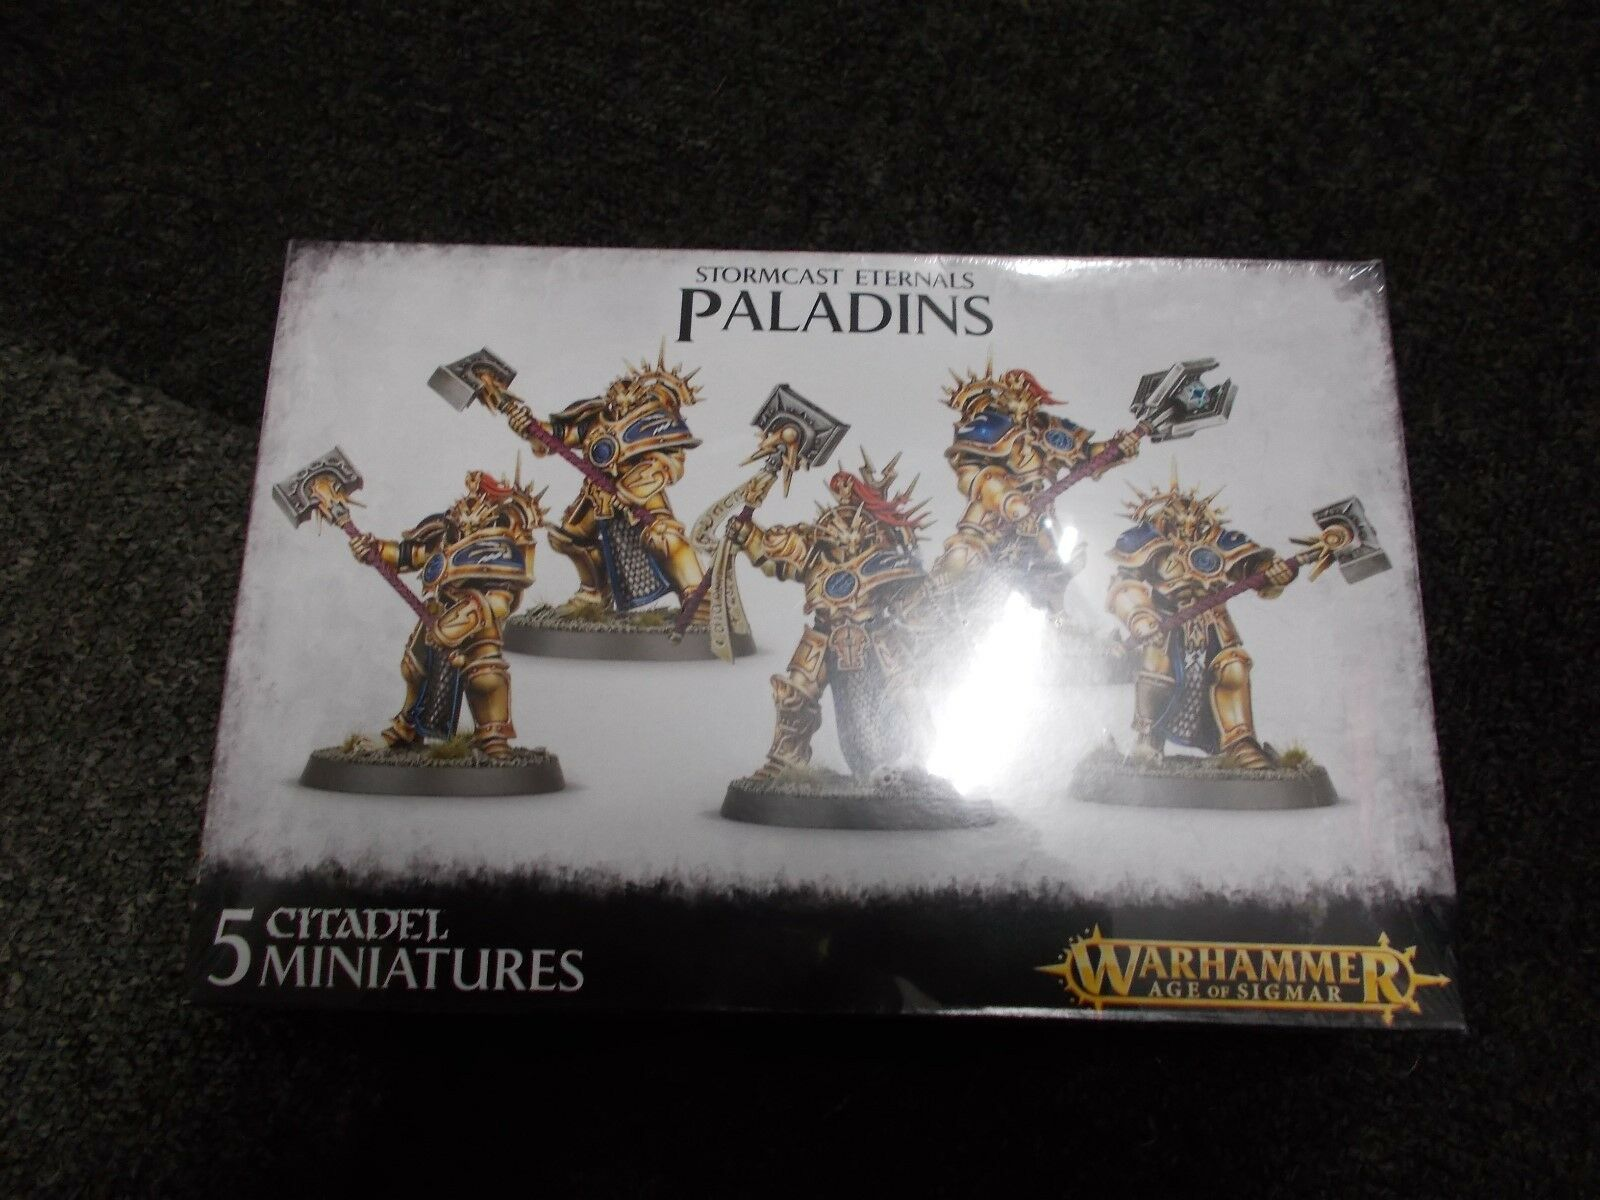 GAMES WORKSHOP WARHAMMER AGE OF SIGMAR STORMCAST ETERNALS PALADINS